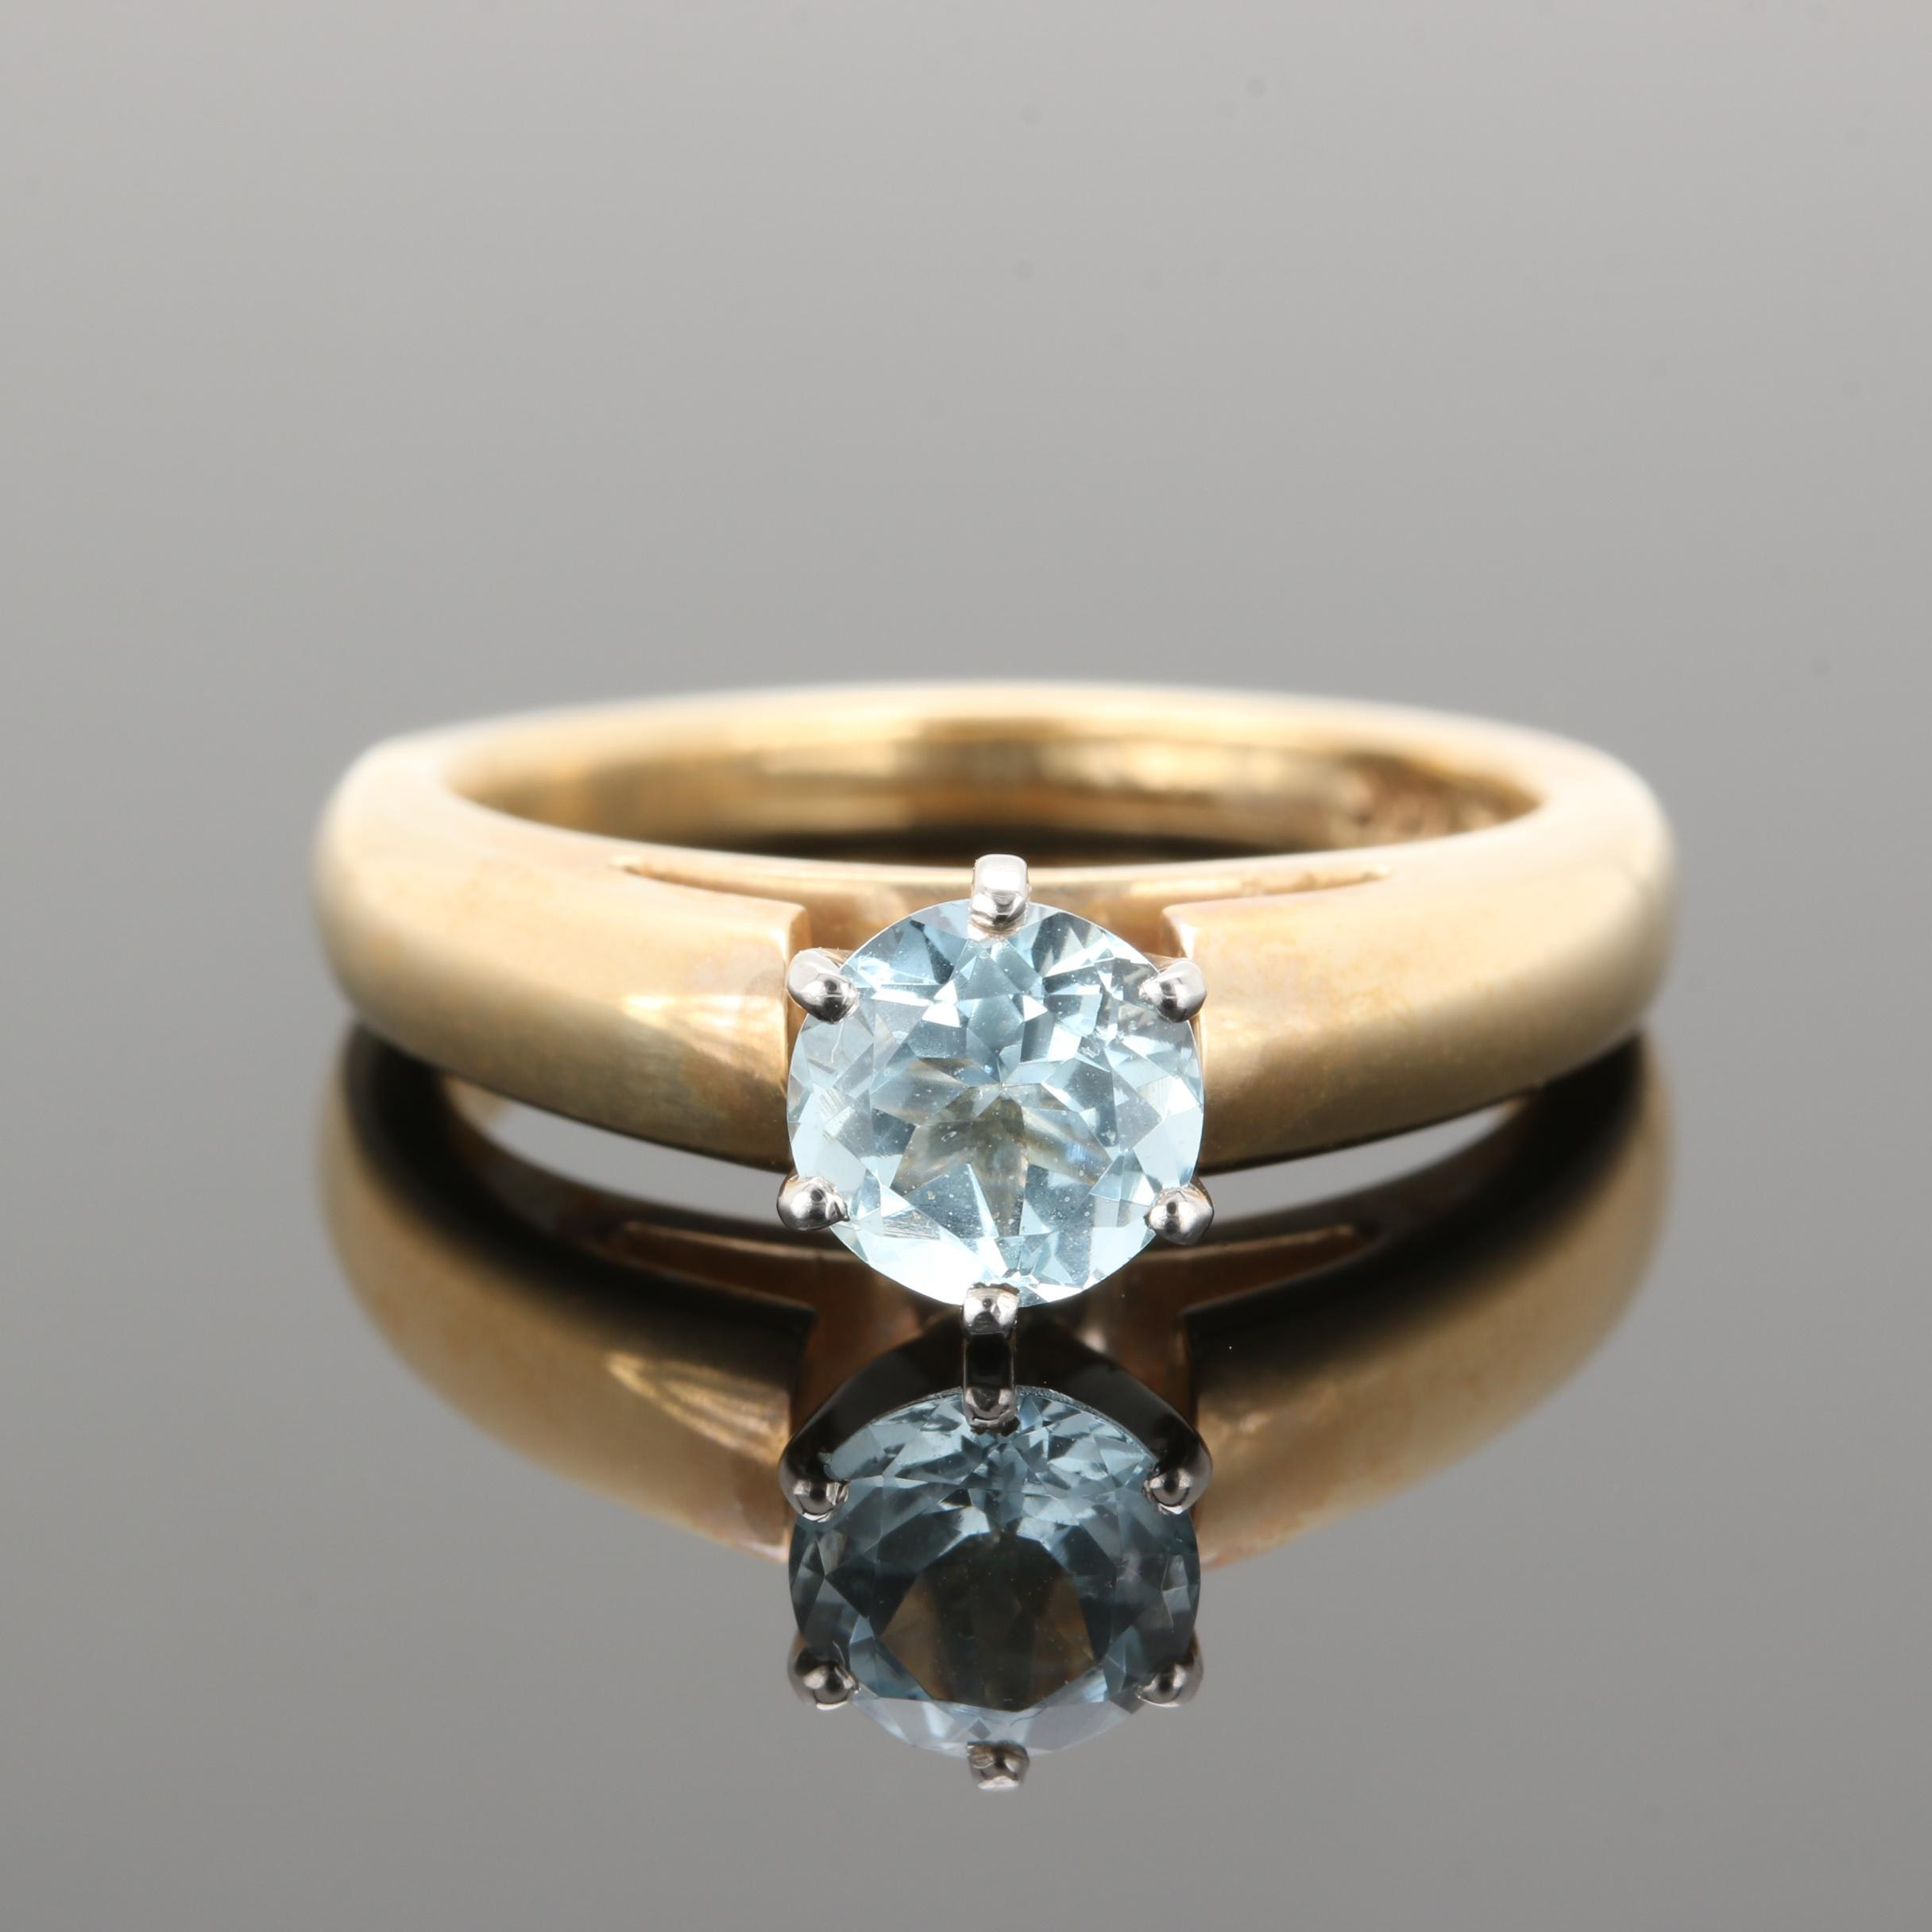 14K Yellow Gold Aquamarine Solitaire Ring